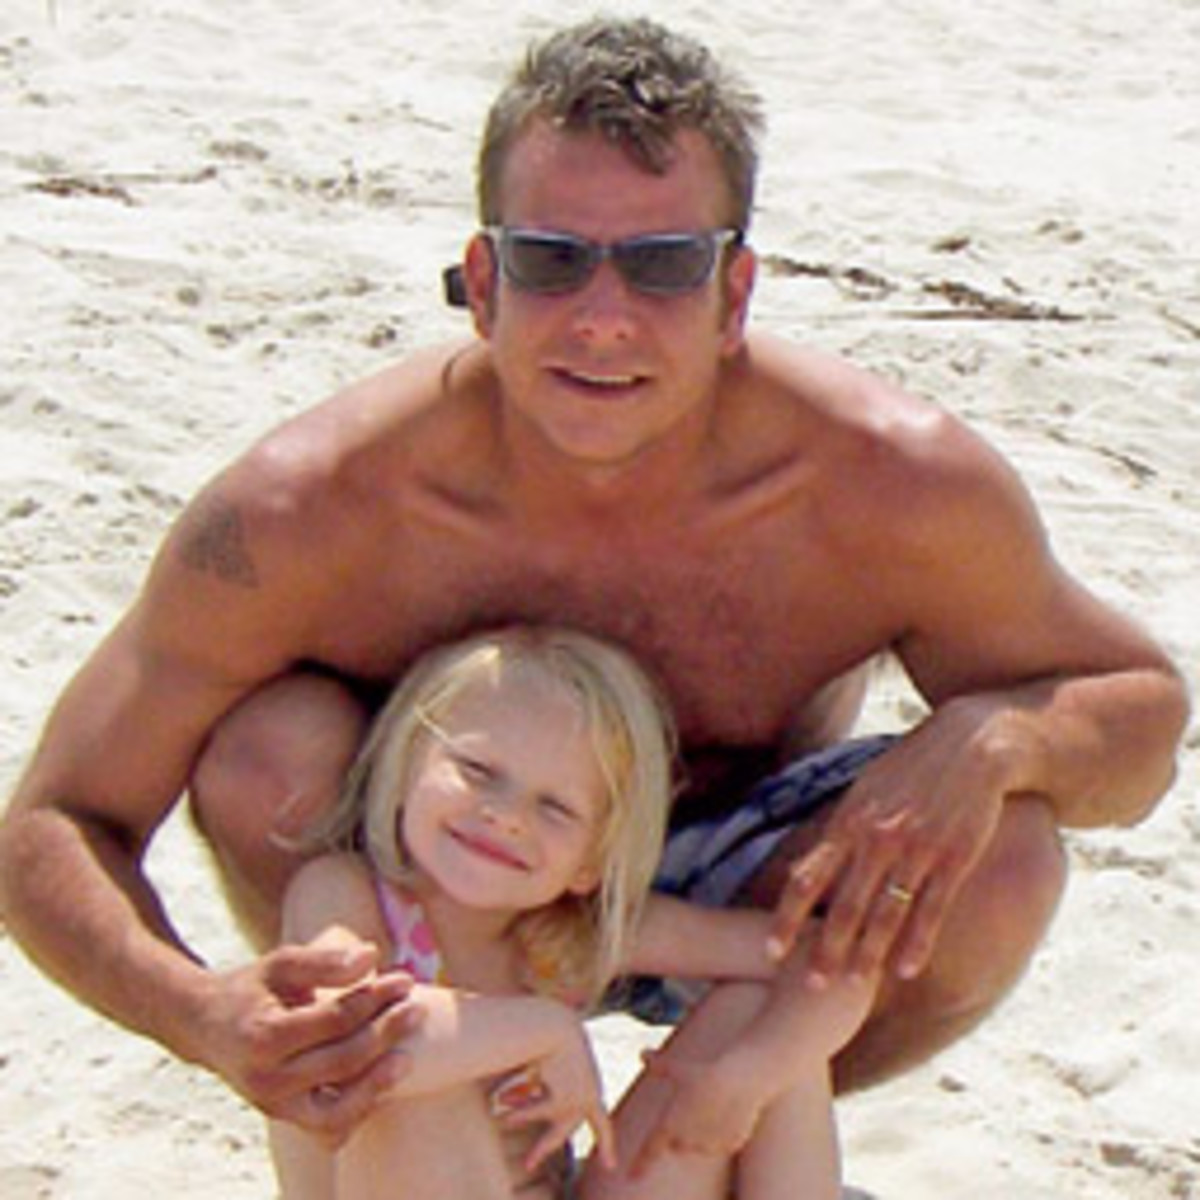 Chris O'Shea with his daughter, Lily, in 2007.